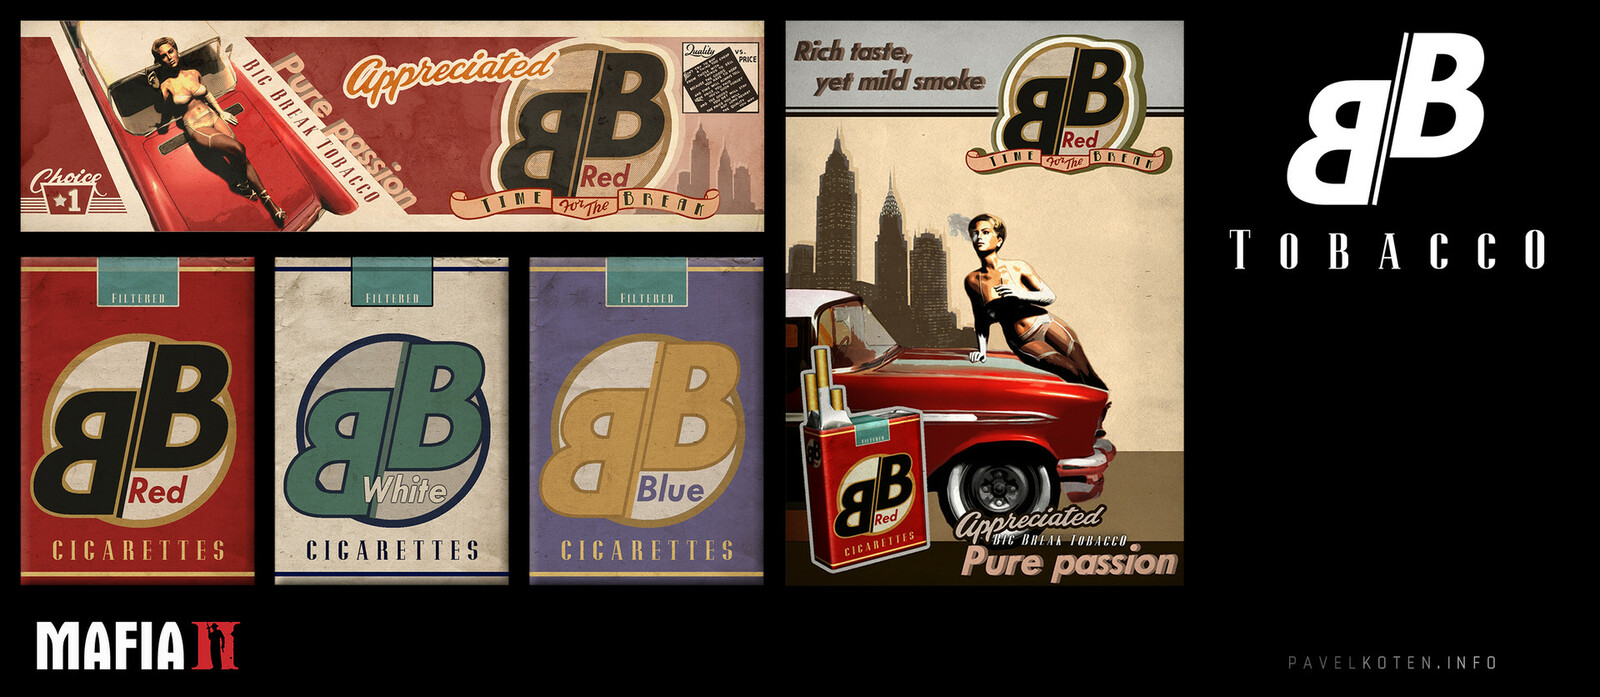 Branding design for in-game cigarettes used throughout the game.